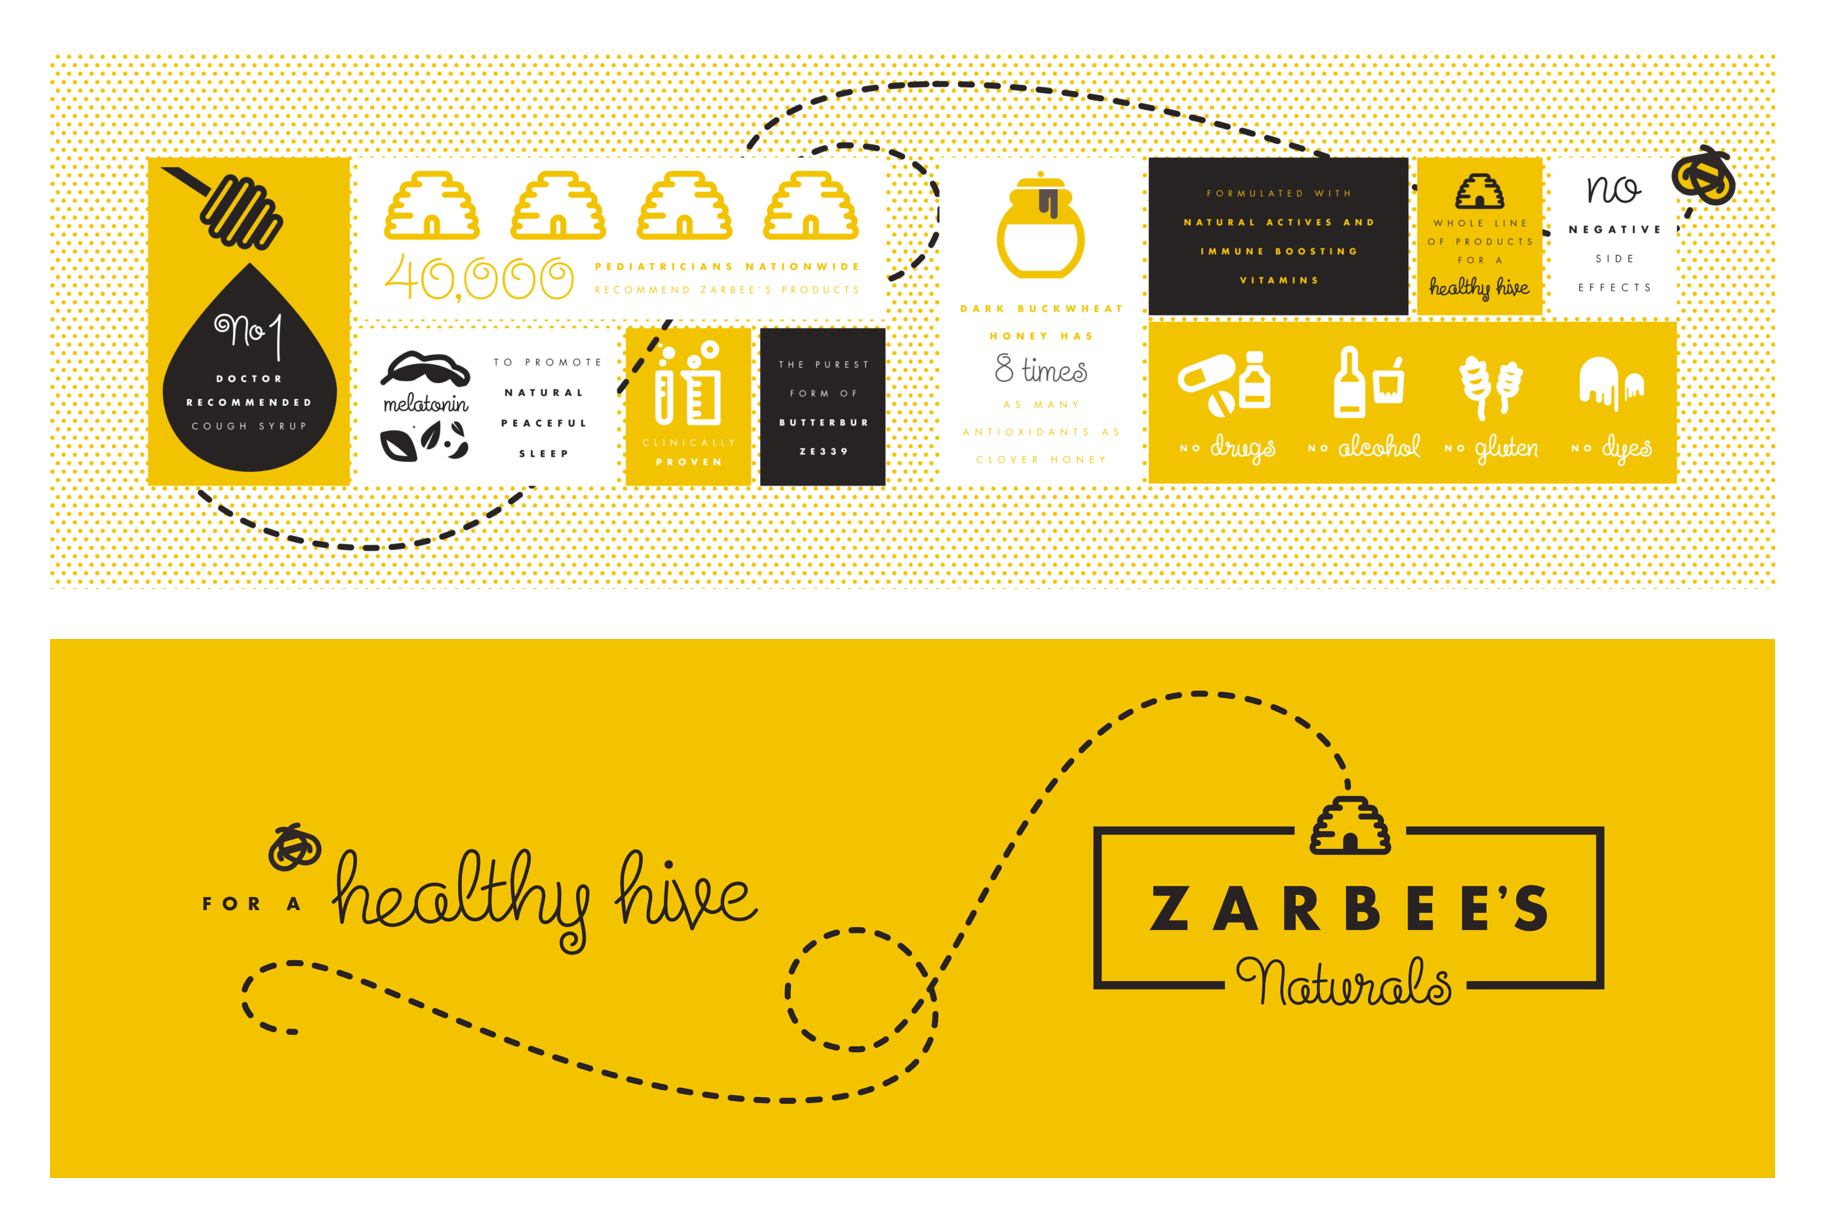 Spreads from Zarbee's pitch book